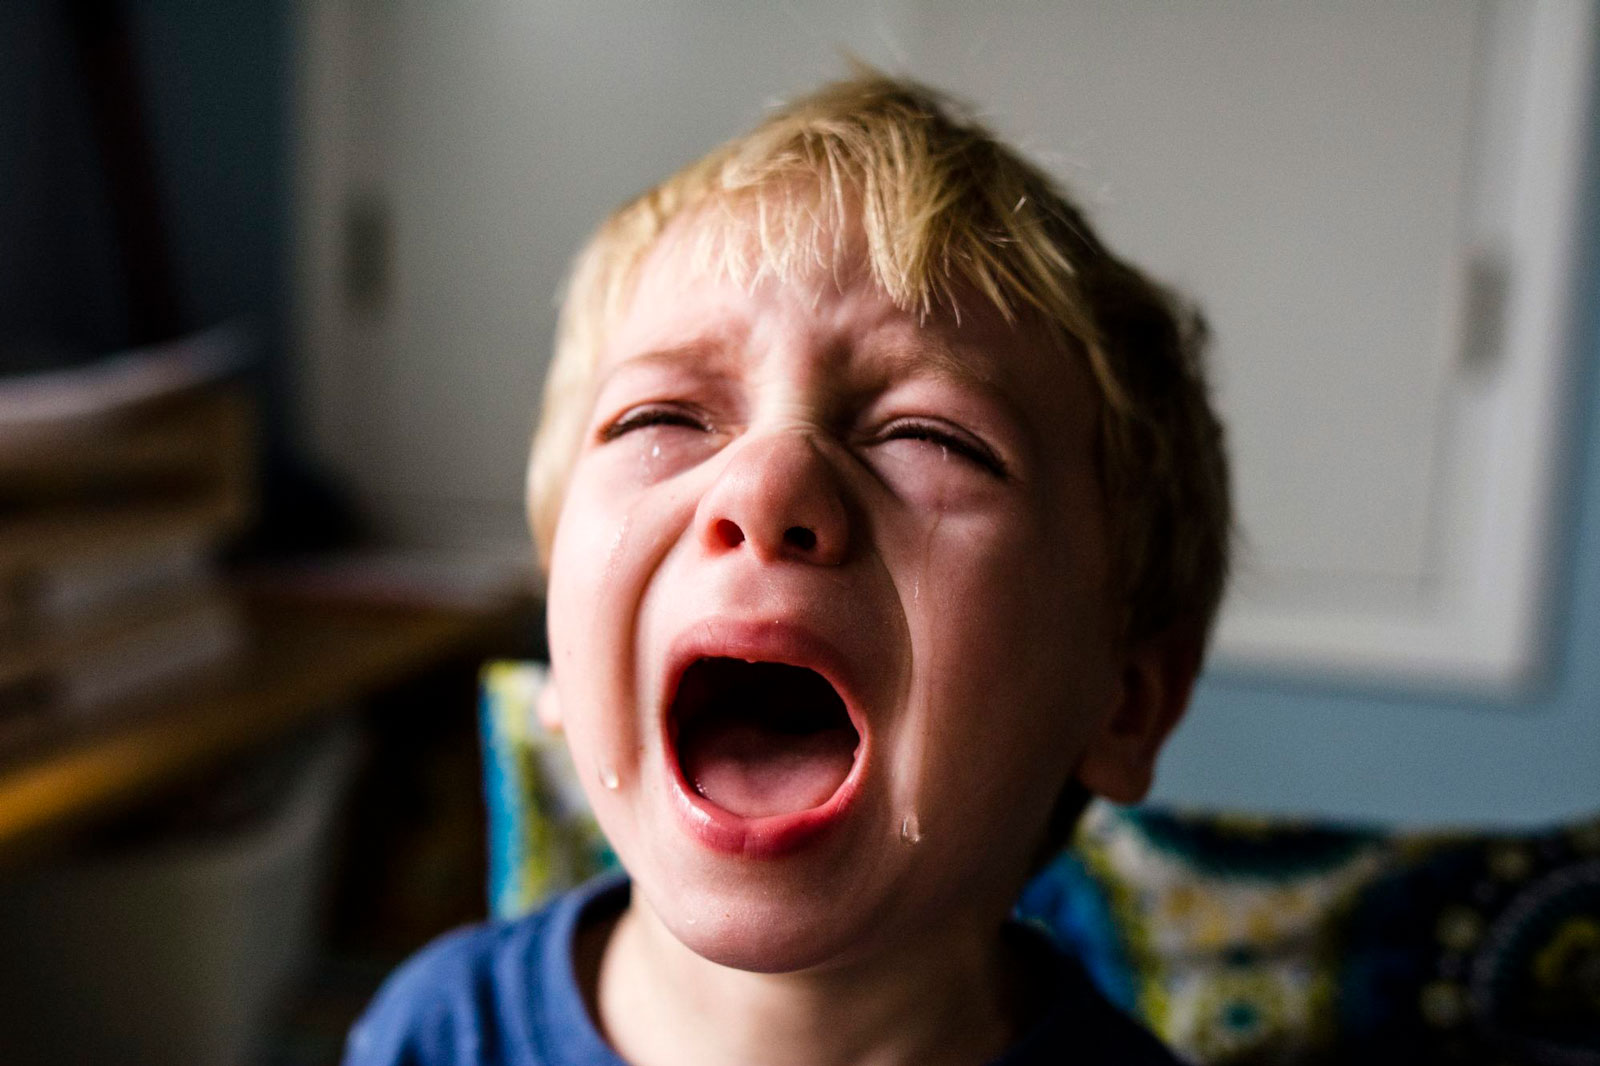 Boy Crying | The 10 Best Books For First Time Parents To Read